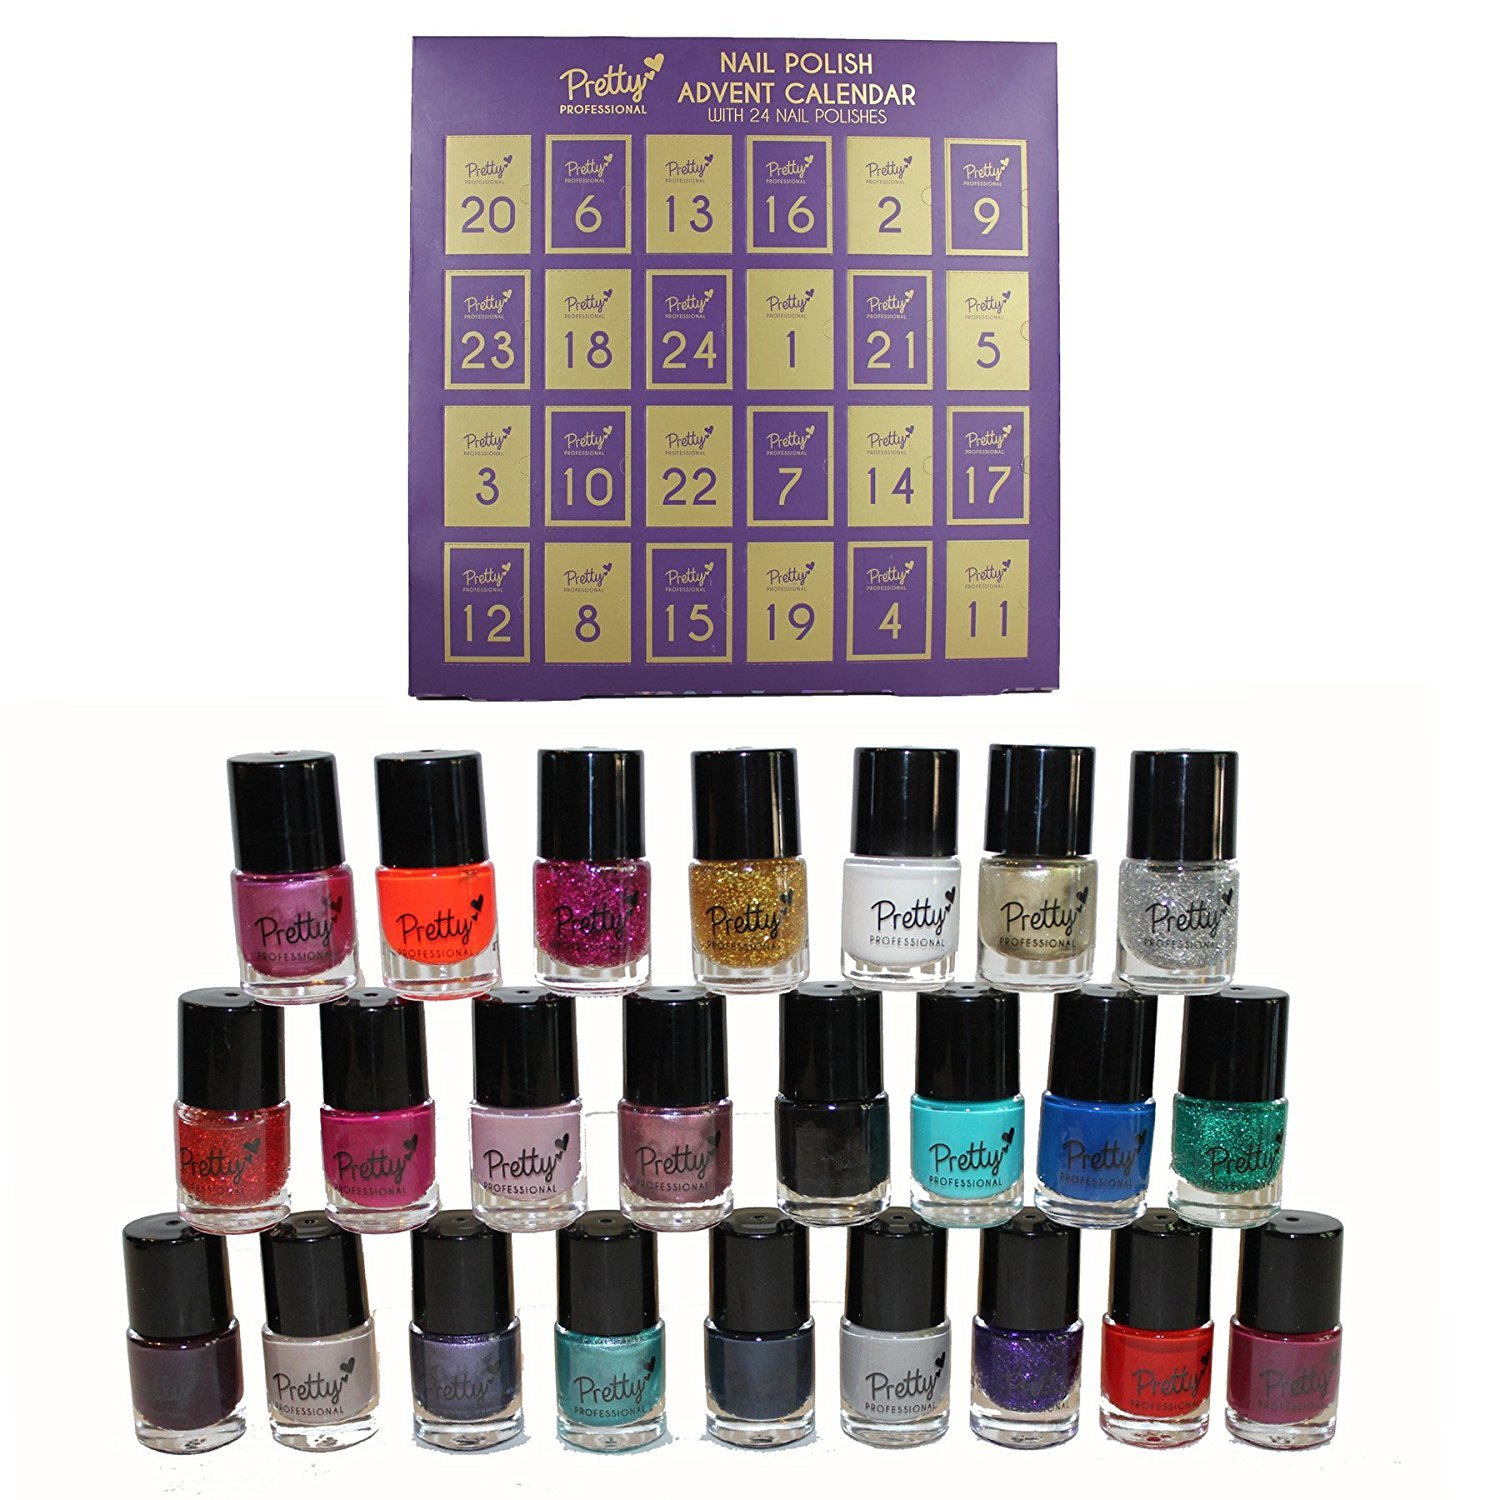 Pretty Professional Make Up Gifts - Christmas Nail Polish Advent ...